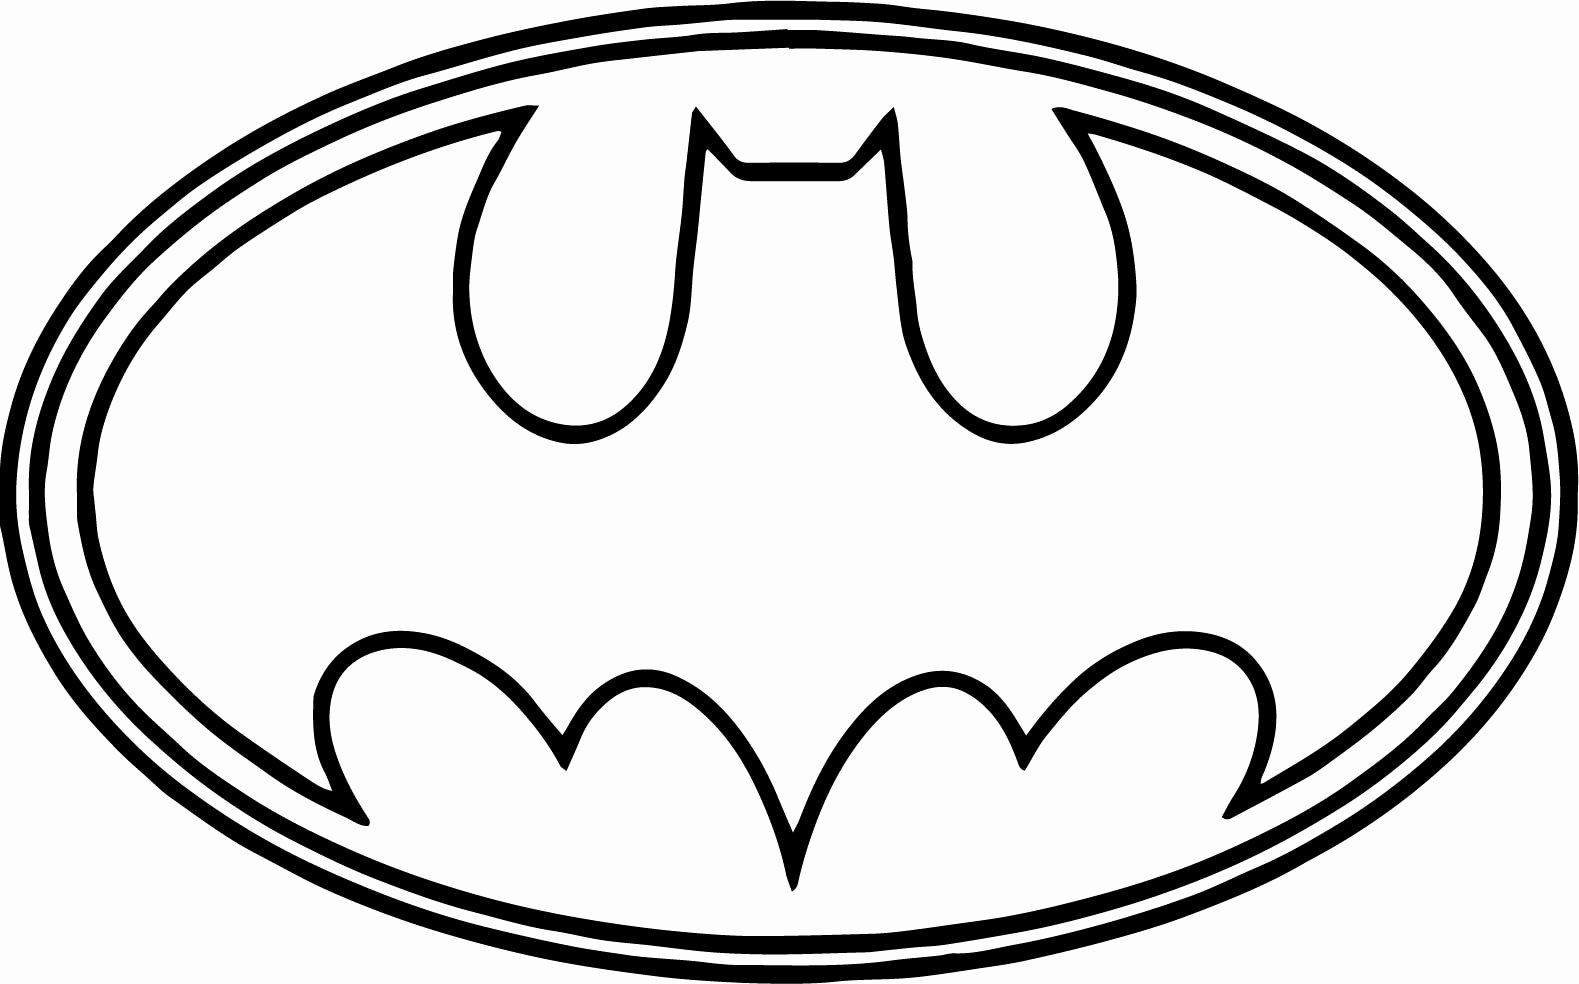 Batman Symbol Coloring Page Best Of Batman Logo Outline Coloring